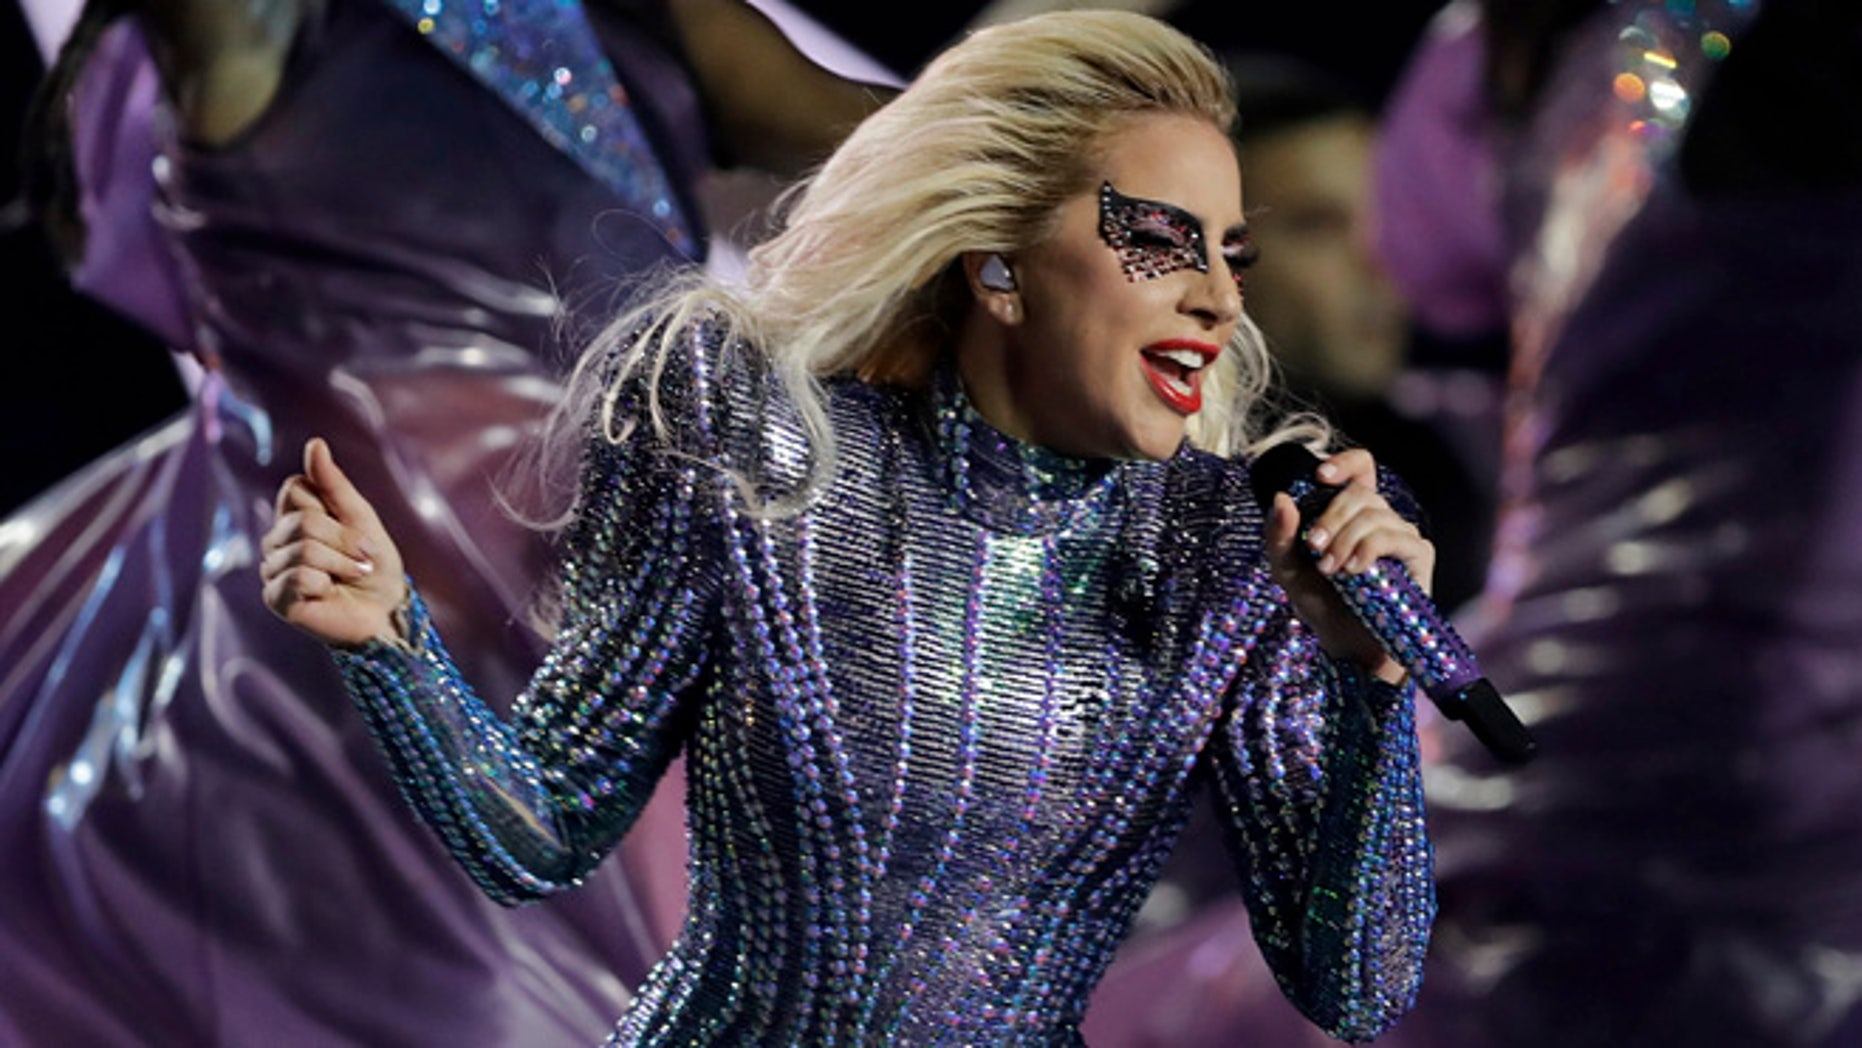 Lady Gaga says pride weekend is a time to shine a light on equality.